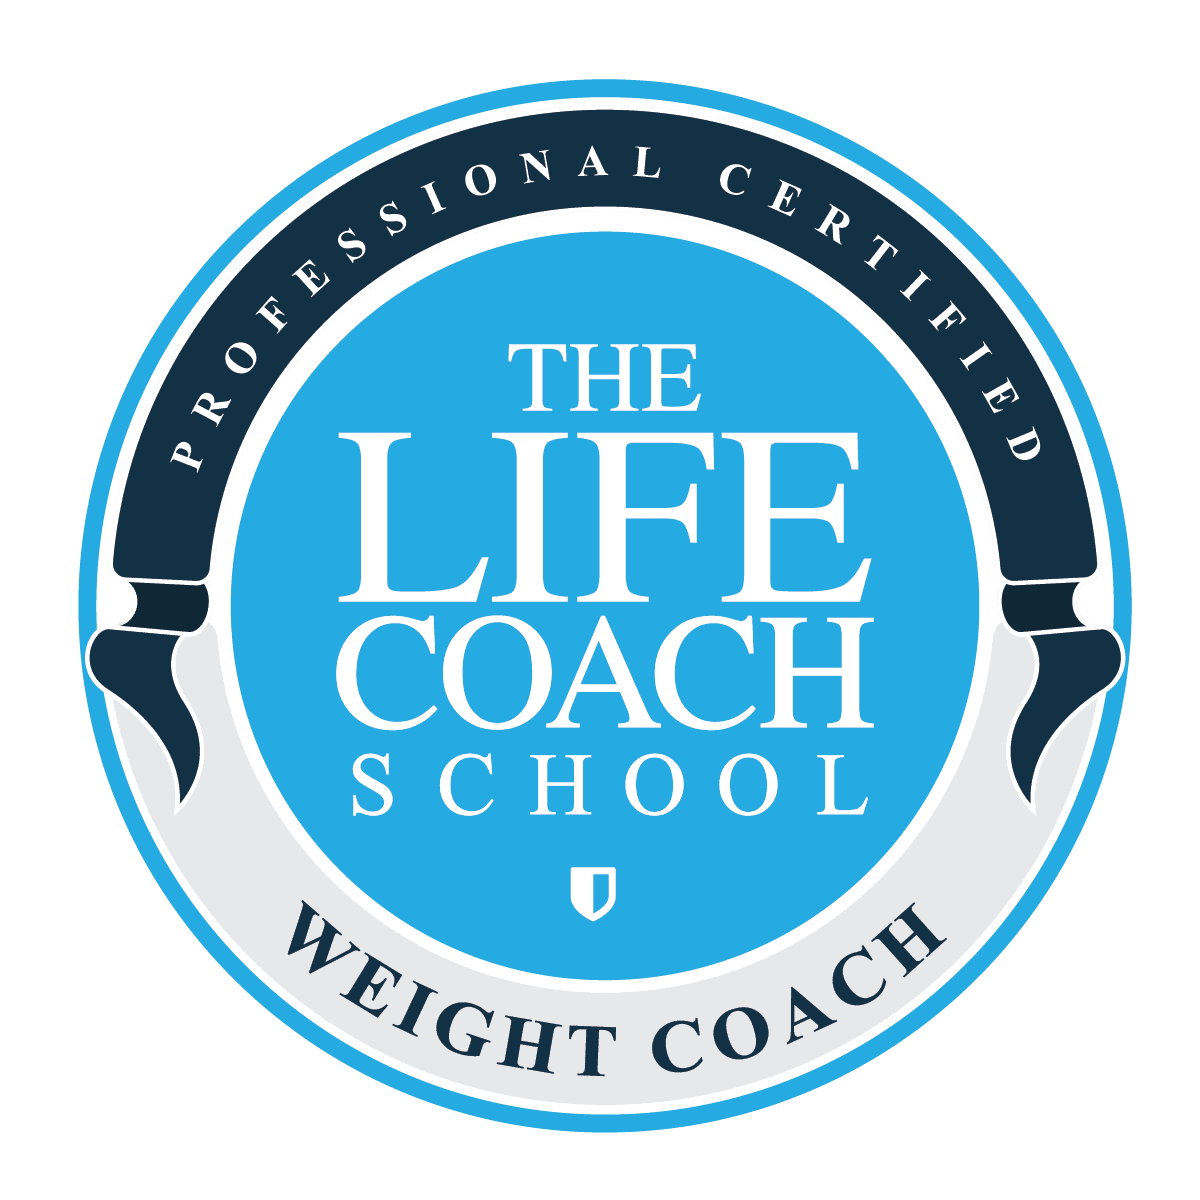 weightcoach